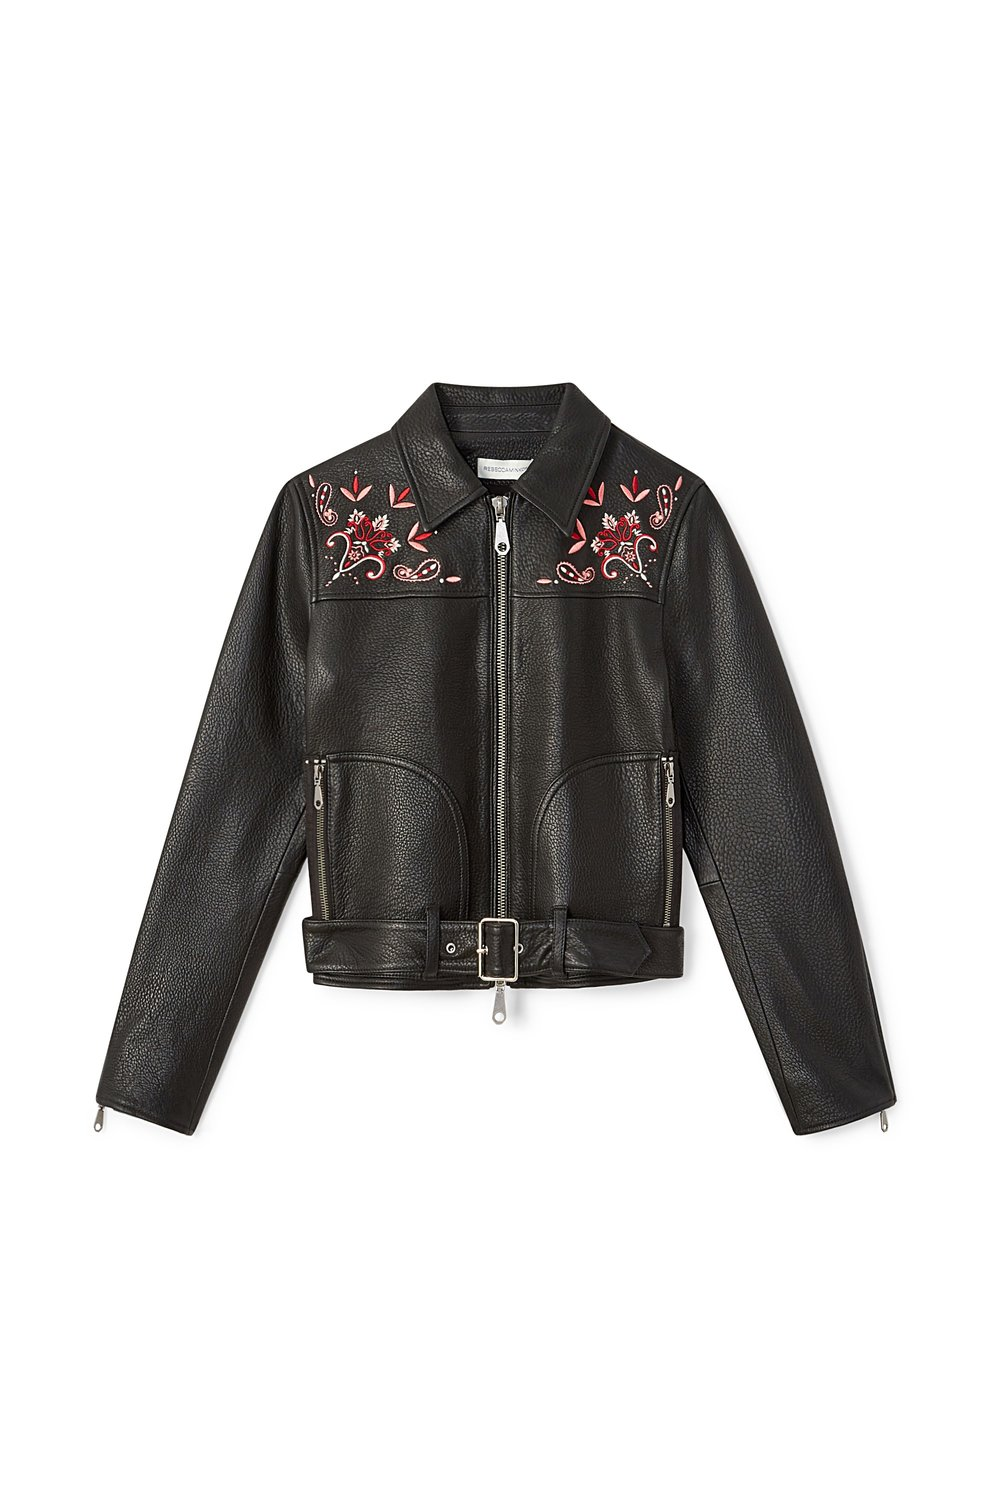 black leather jacket with floral embroidery